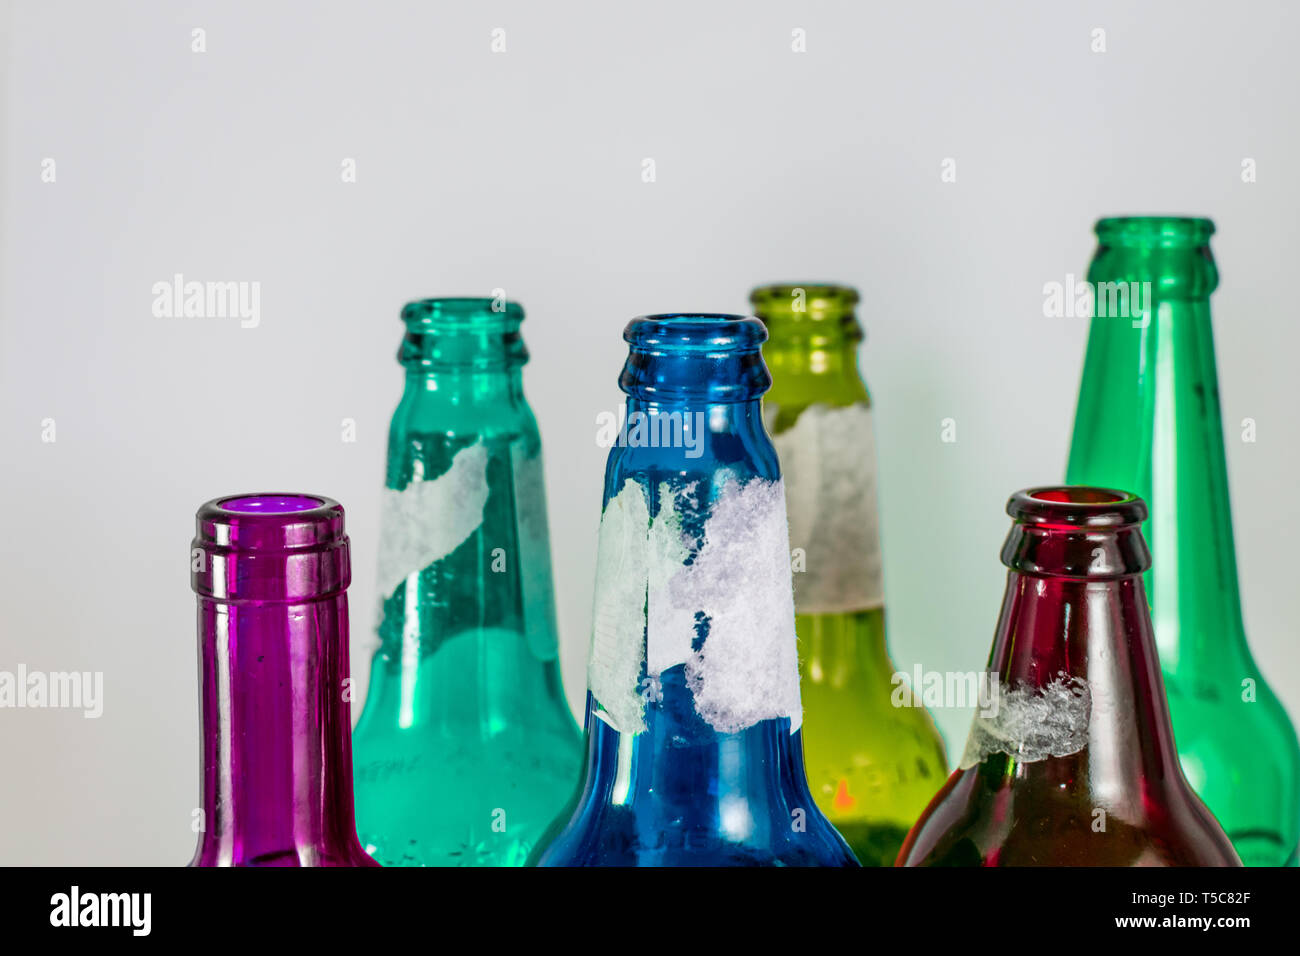 Image of the bottleneck of empty colored beer and wine glass bottles on a white background. Green, yellow, pink and blue colours. Reuse, acoholism - Stock Image